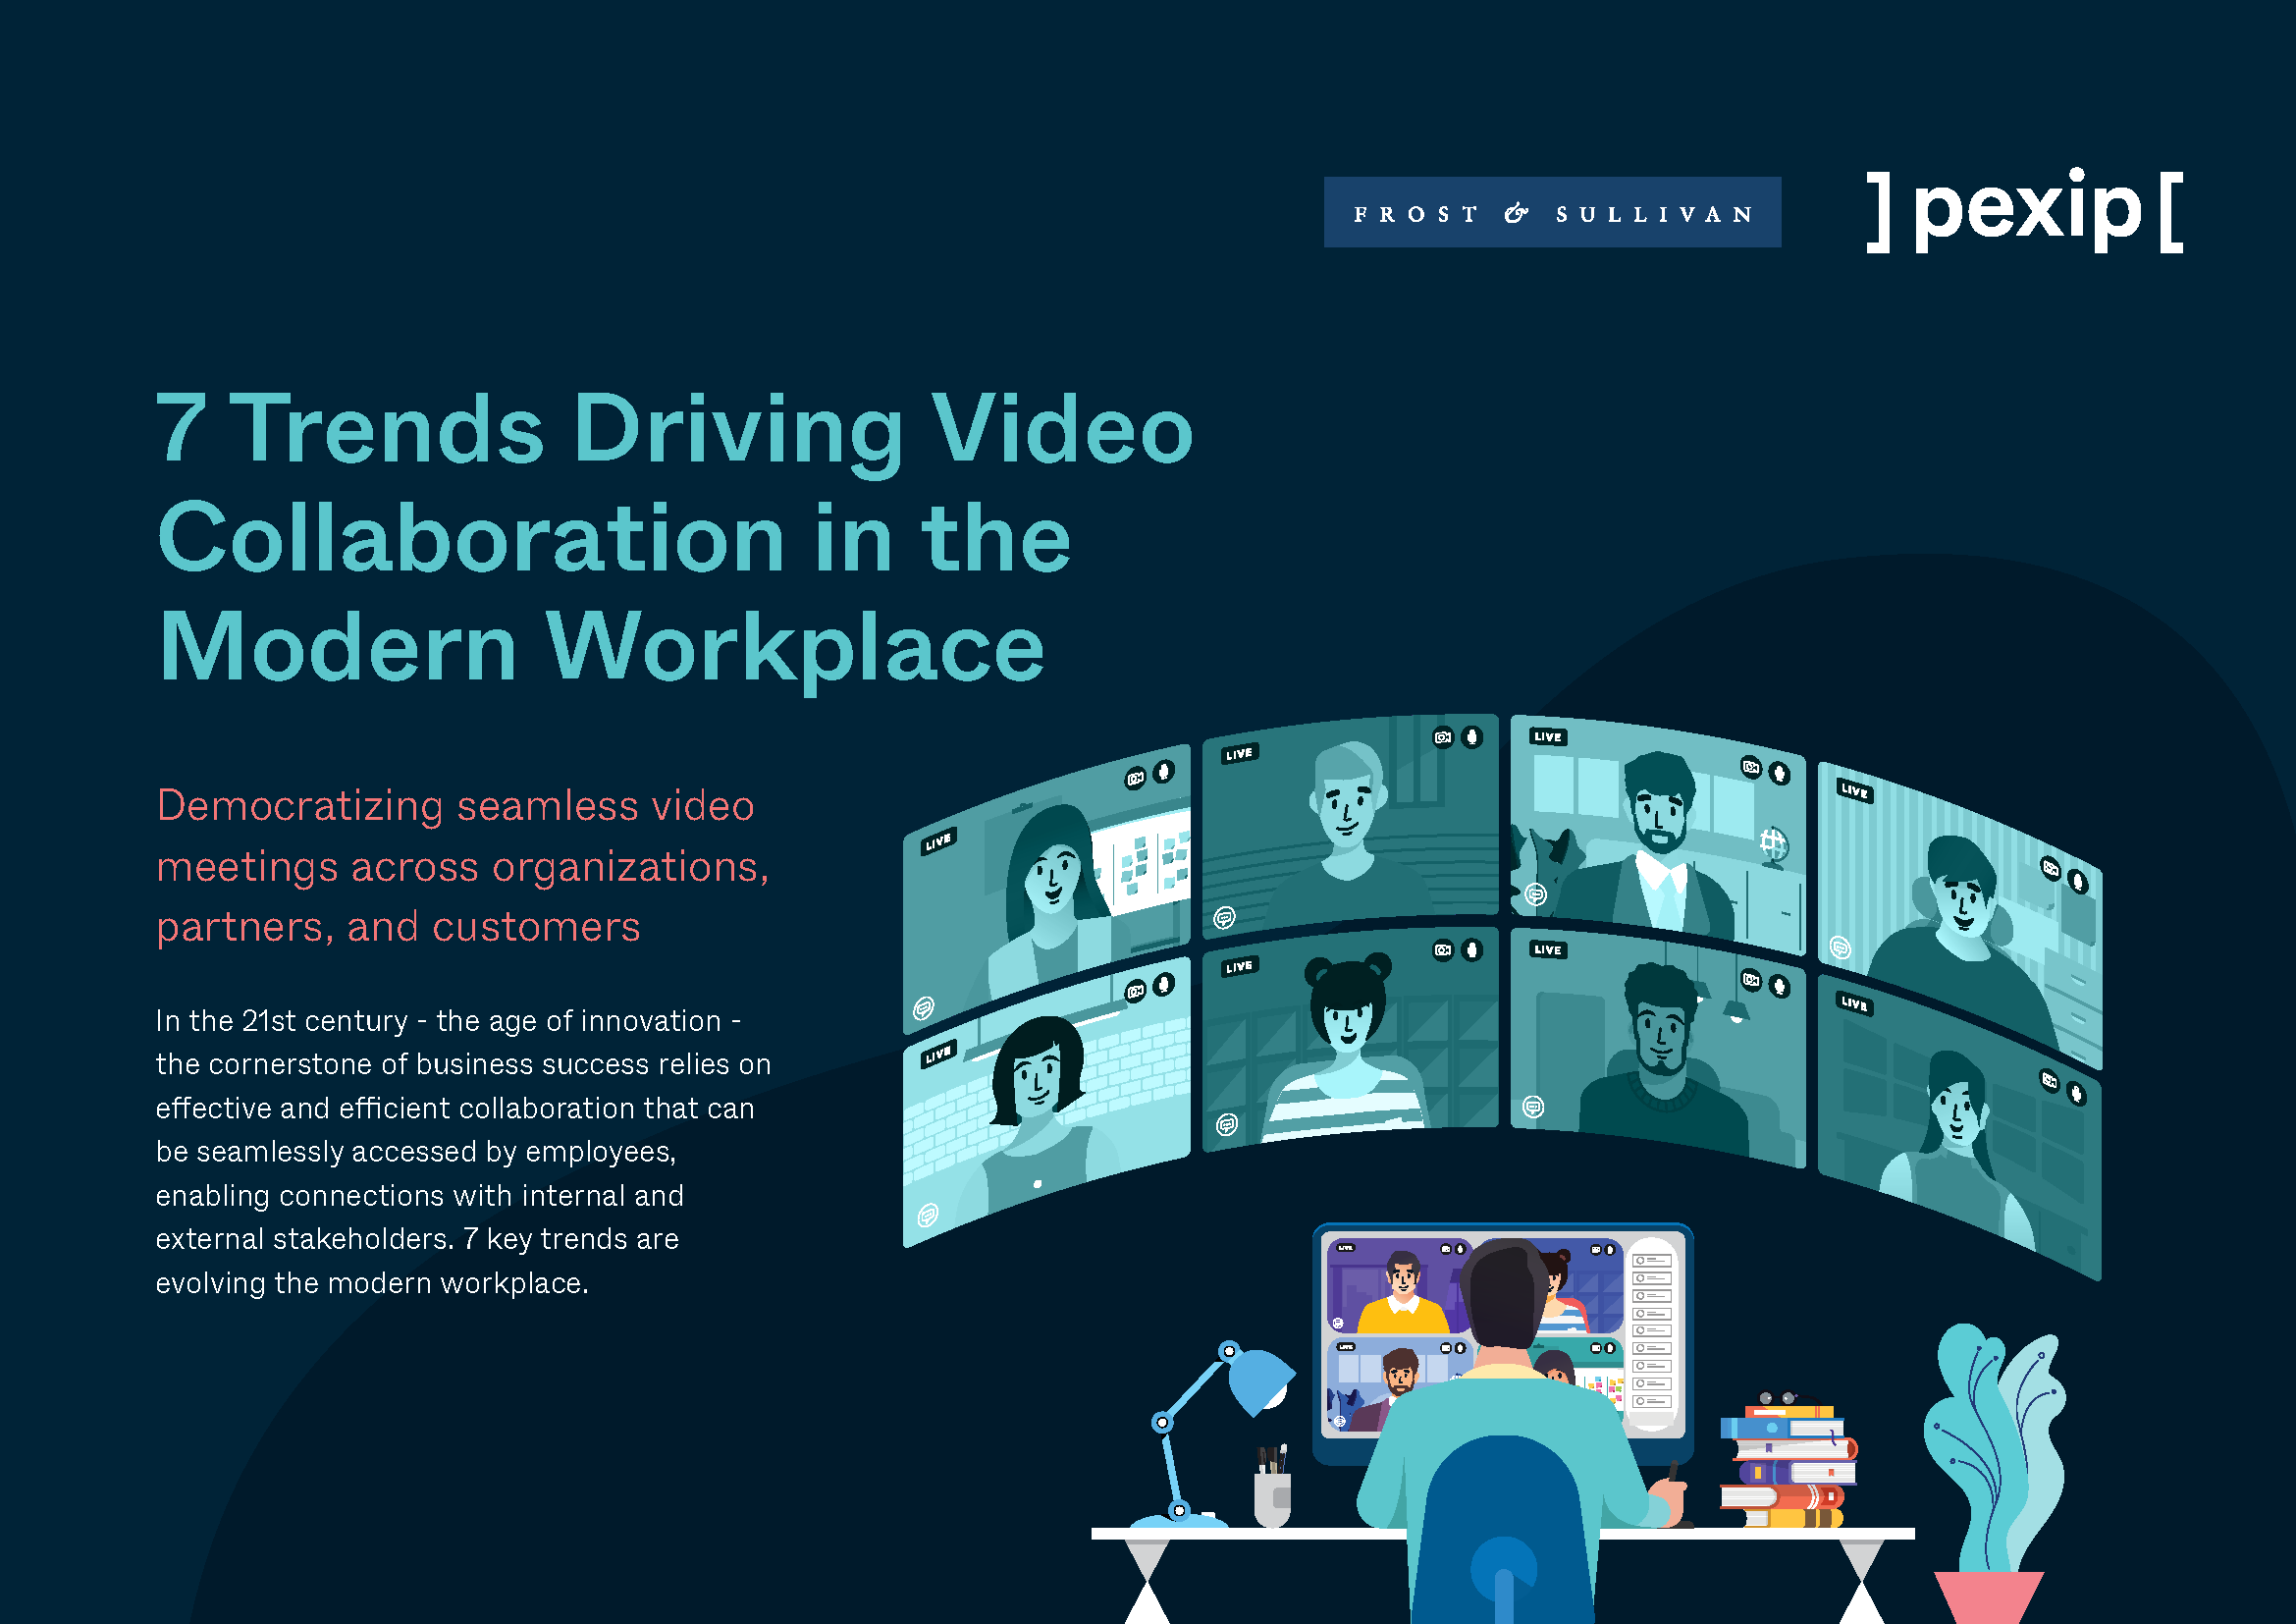 7_trends_driving_video_in_modern_workplace